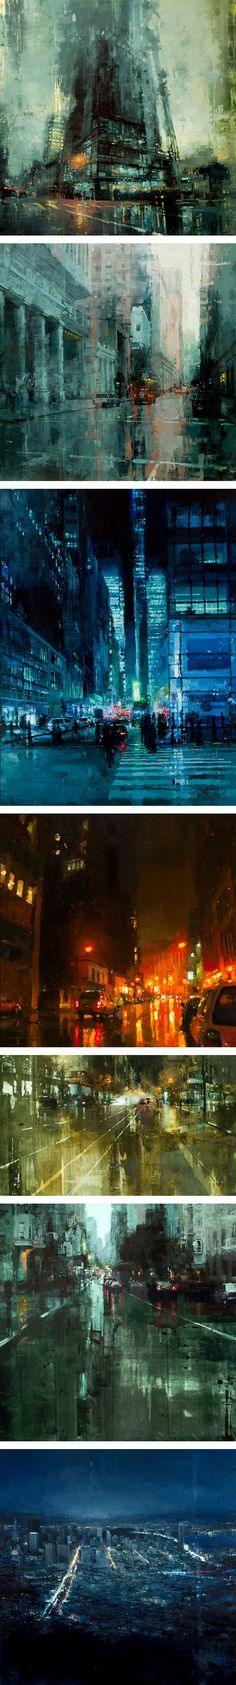 Cityscapes Painted with Oils by Jeremy Mann